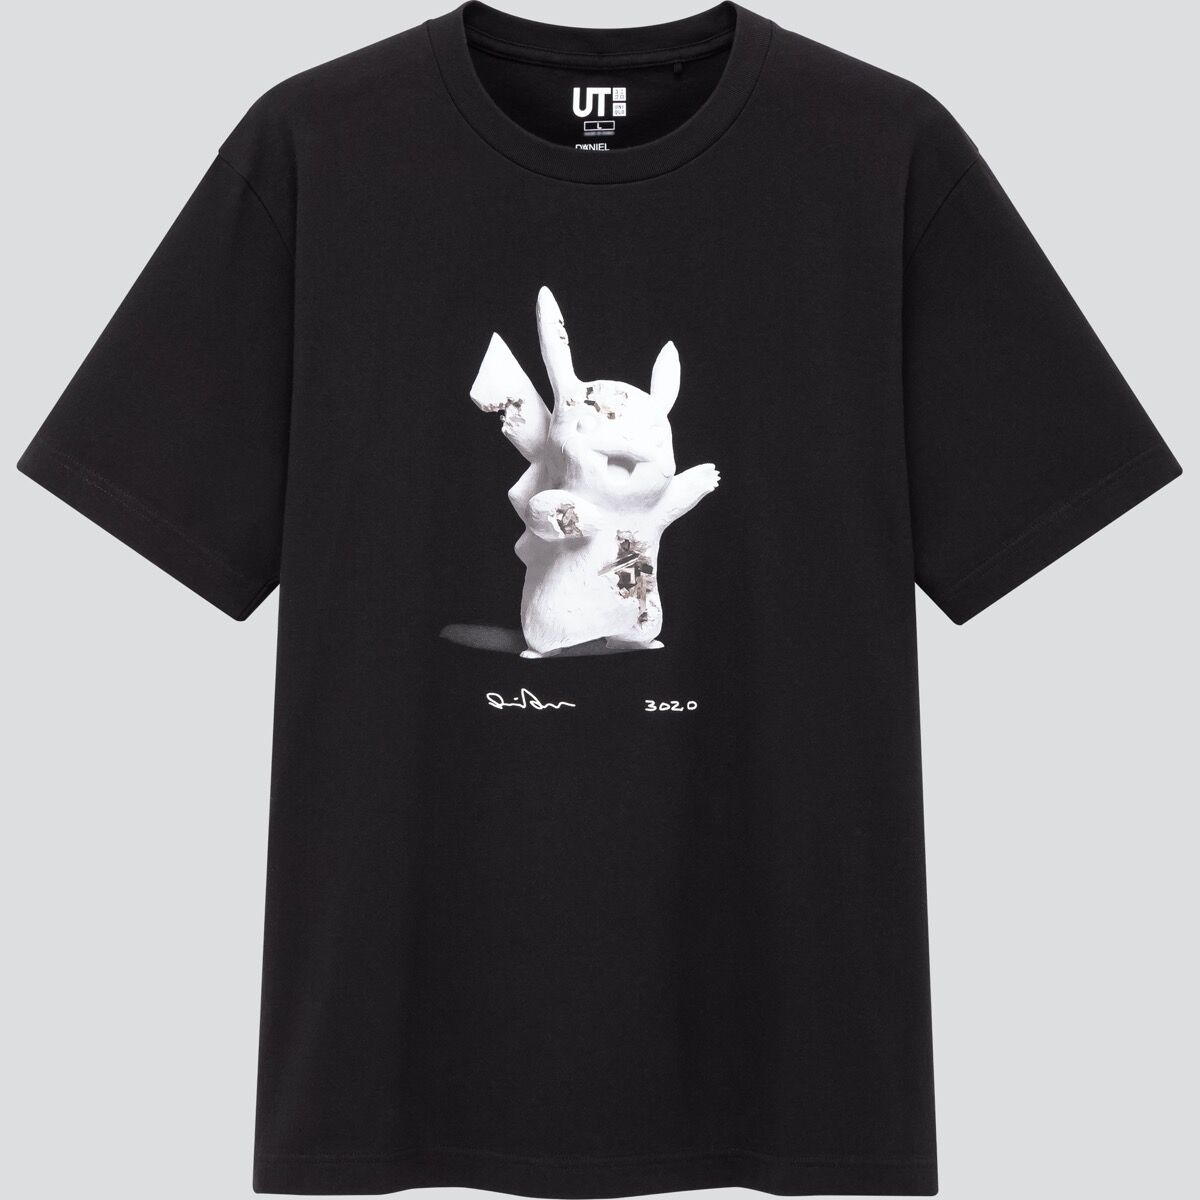 Short-sleeve graphic t-shirt from the Daniel Arsham x Pokémon UT Collection at UNIQLO. © 2020 Pokémon. TM, ®Nintendo. © Daniel Arsham Courtesy of Nanzuka.